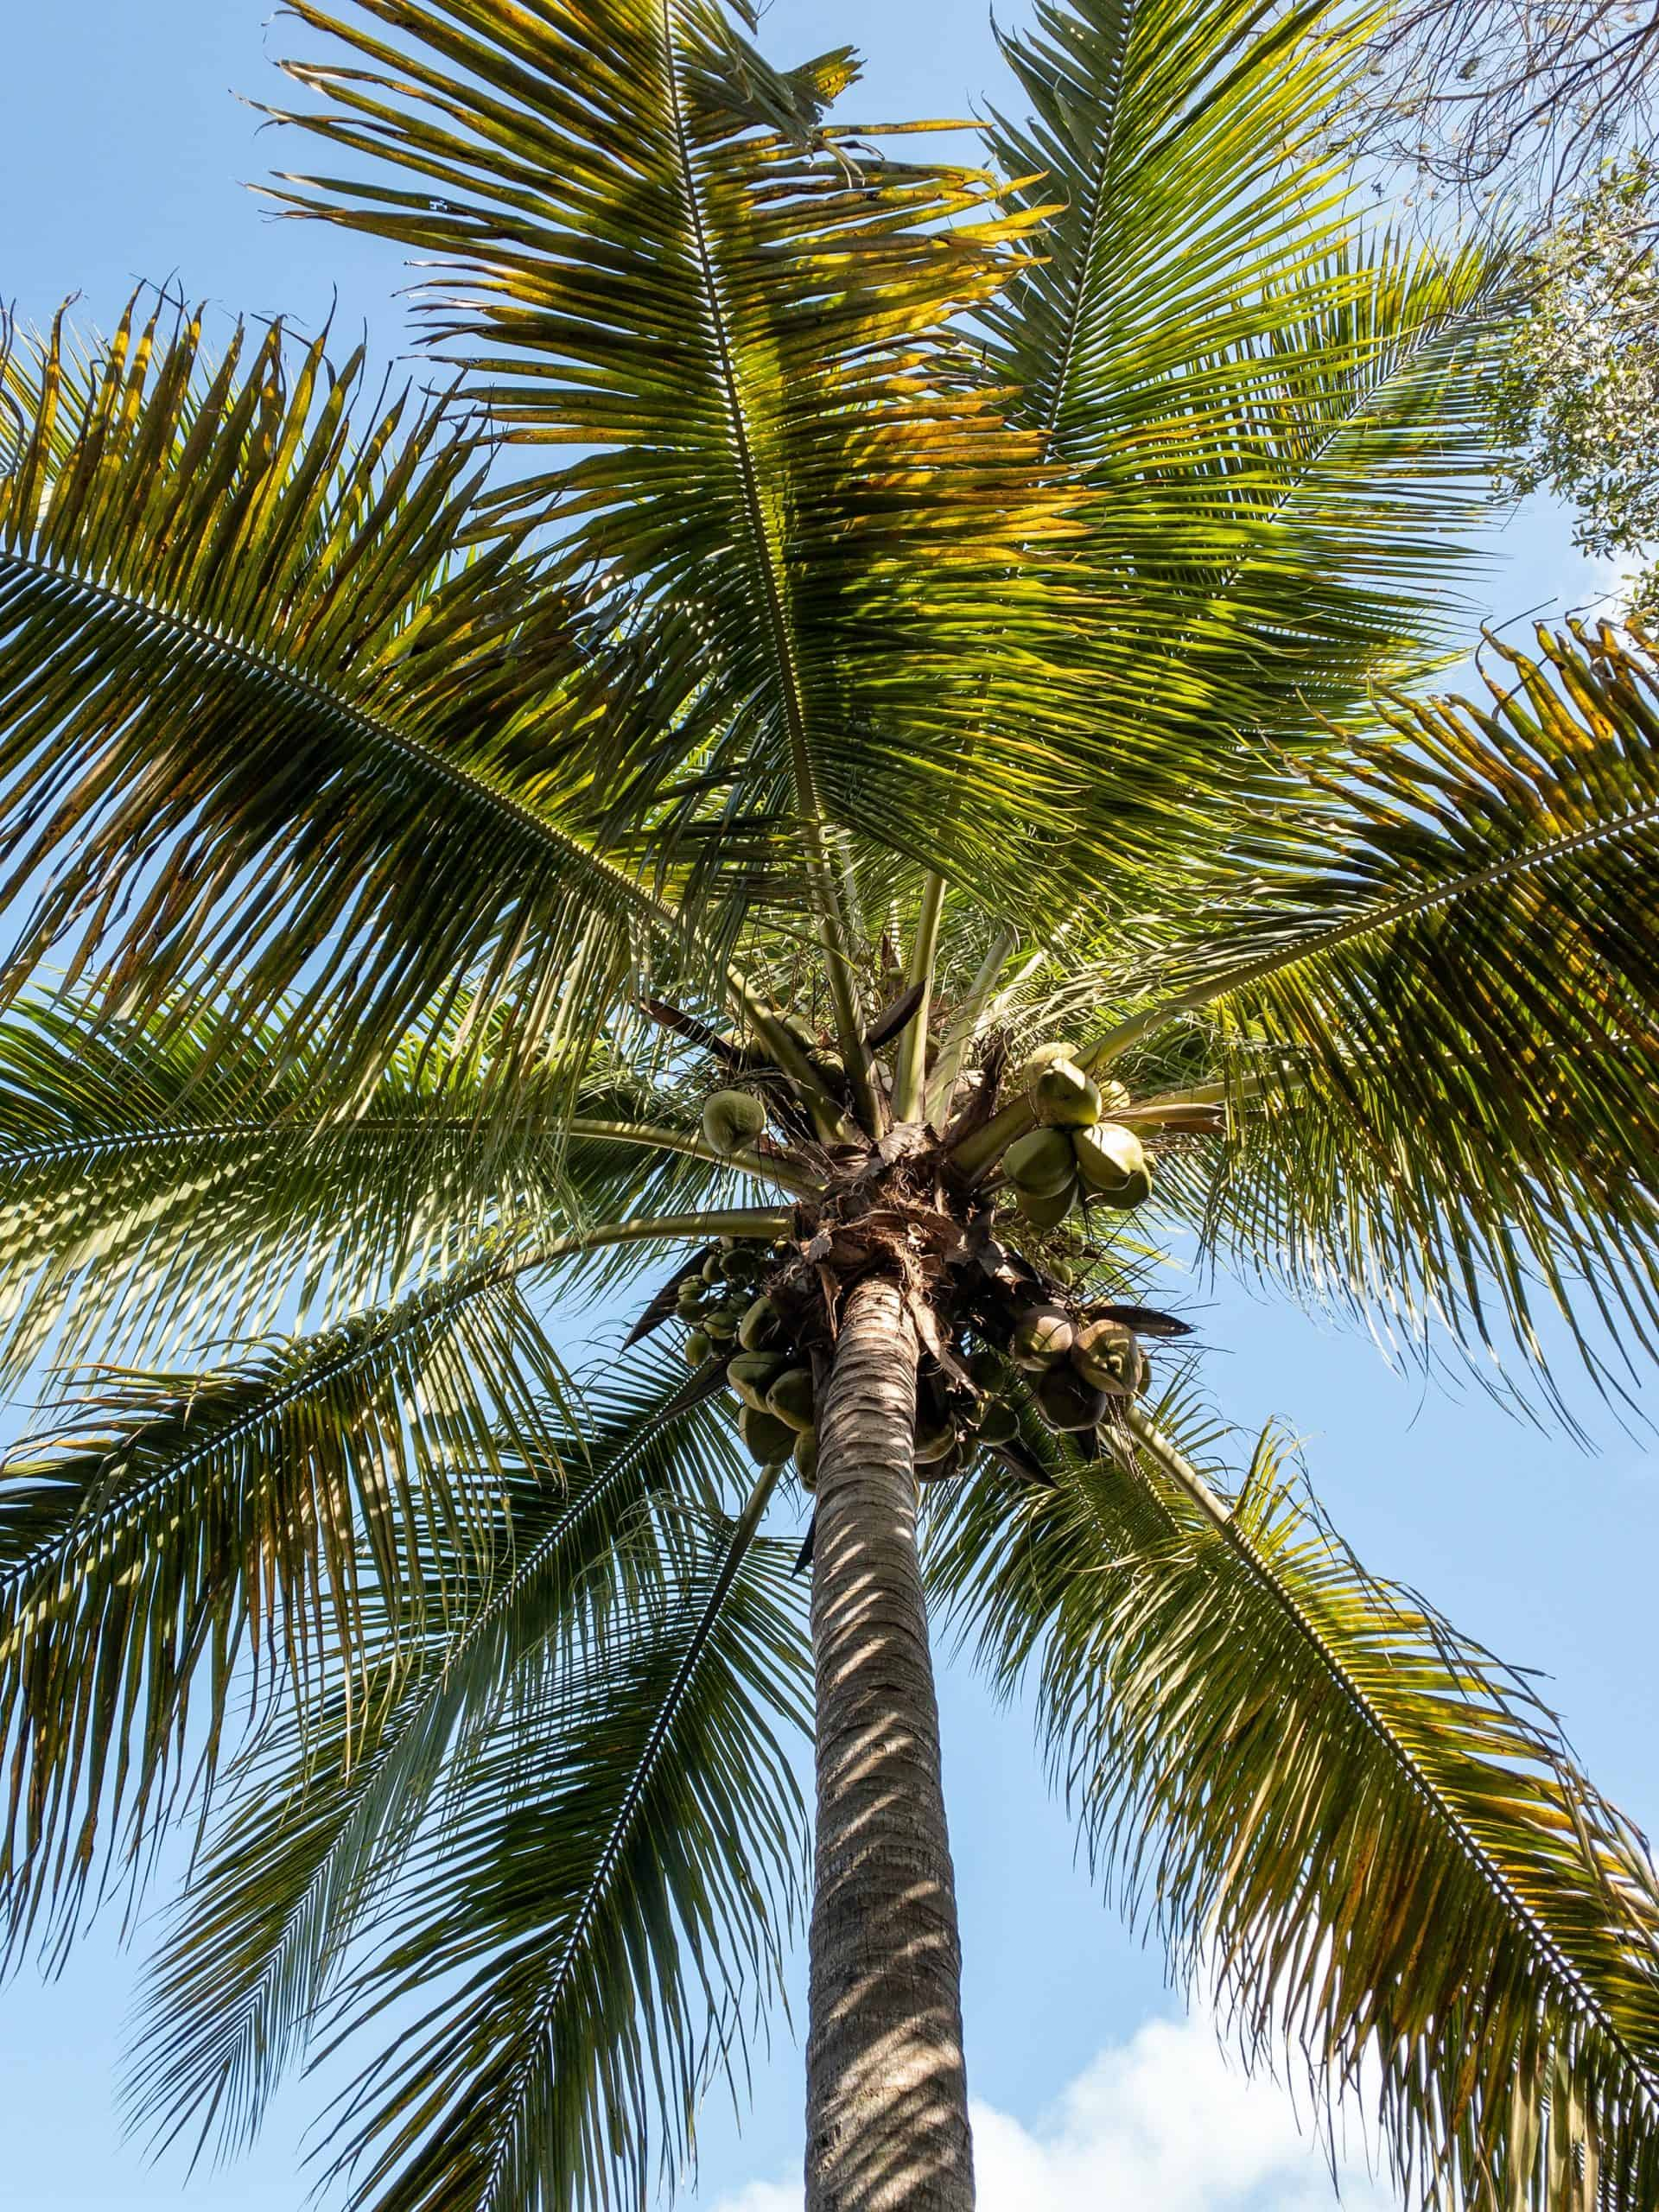 Why is a believer like a palm tree?